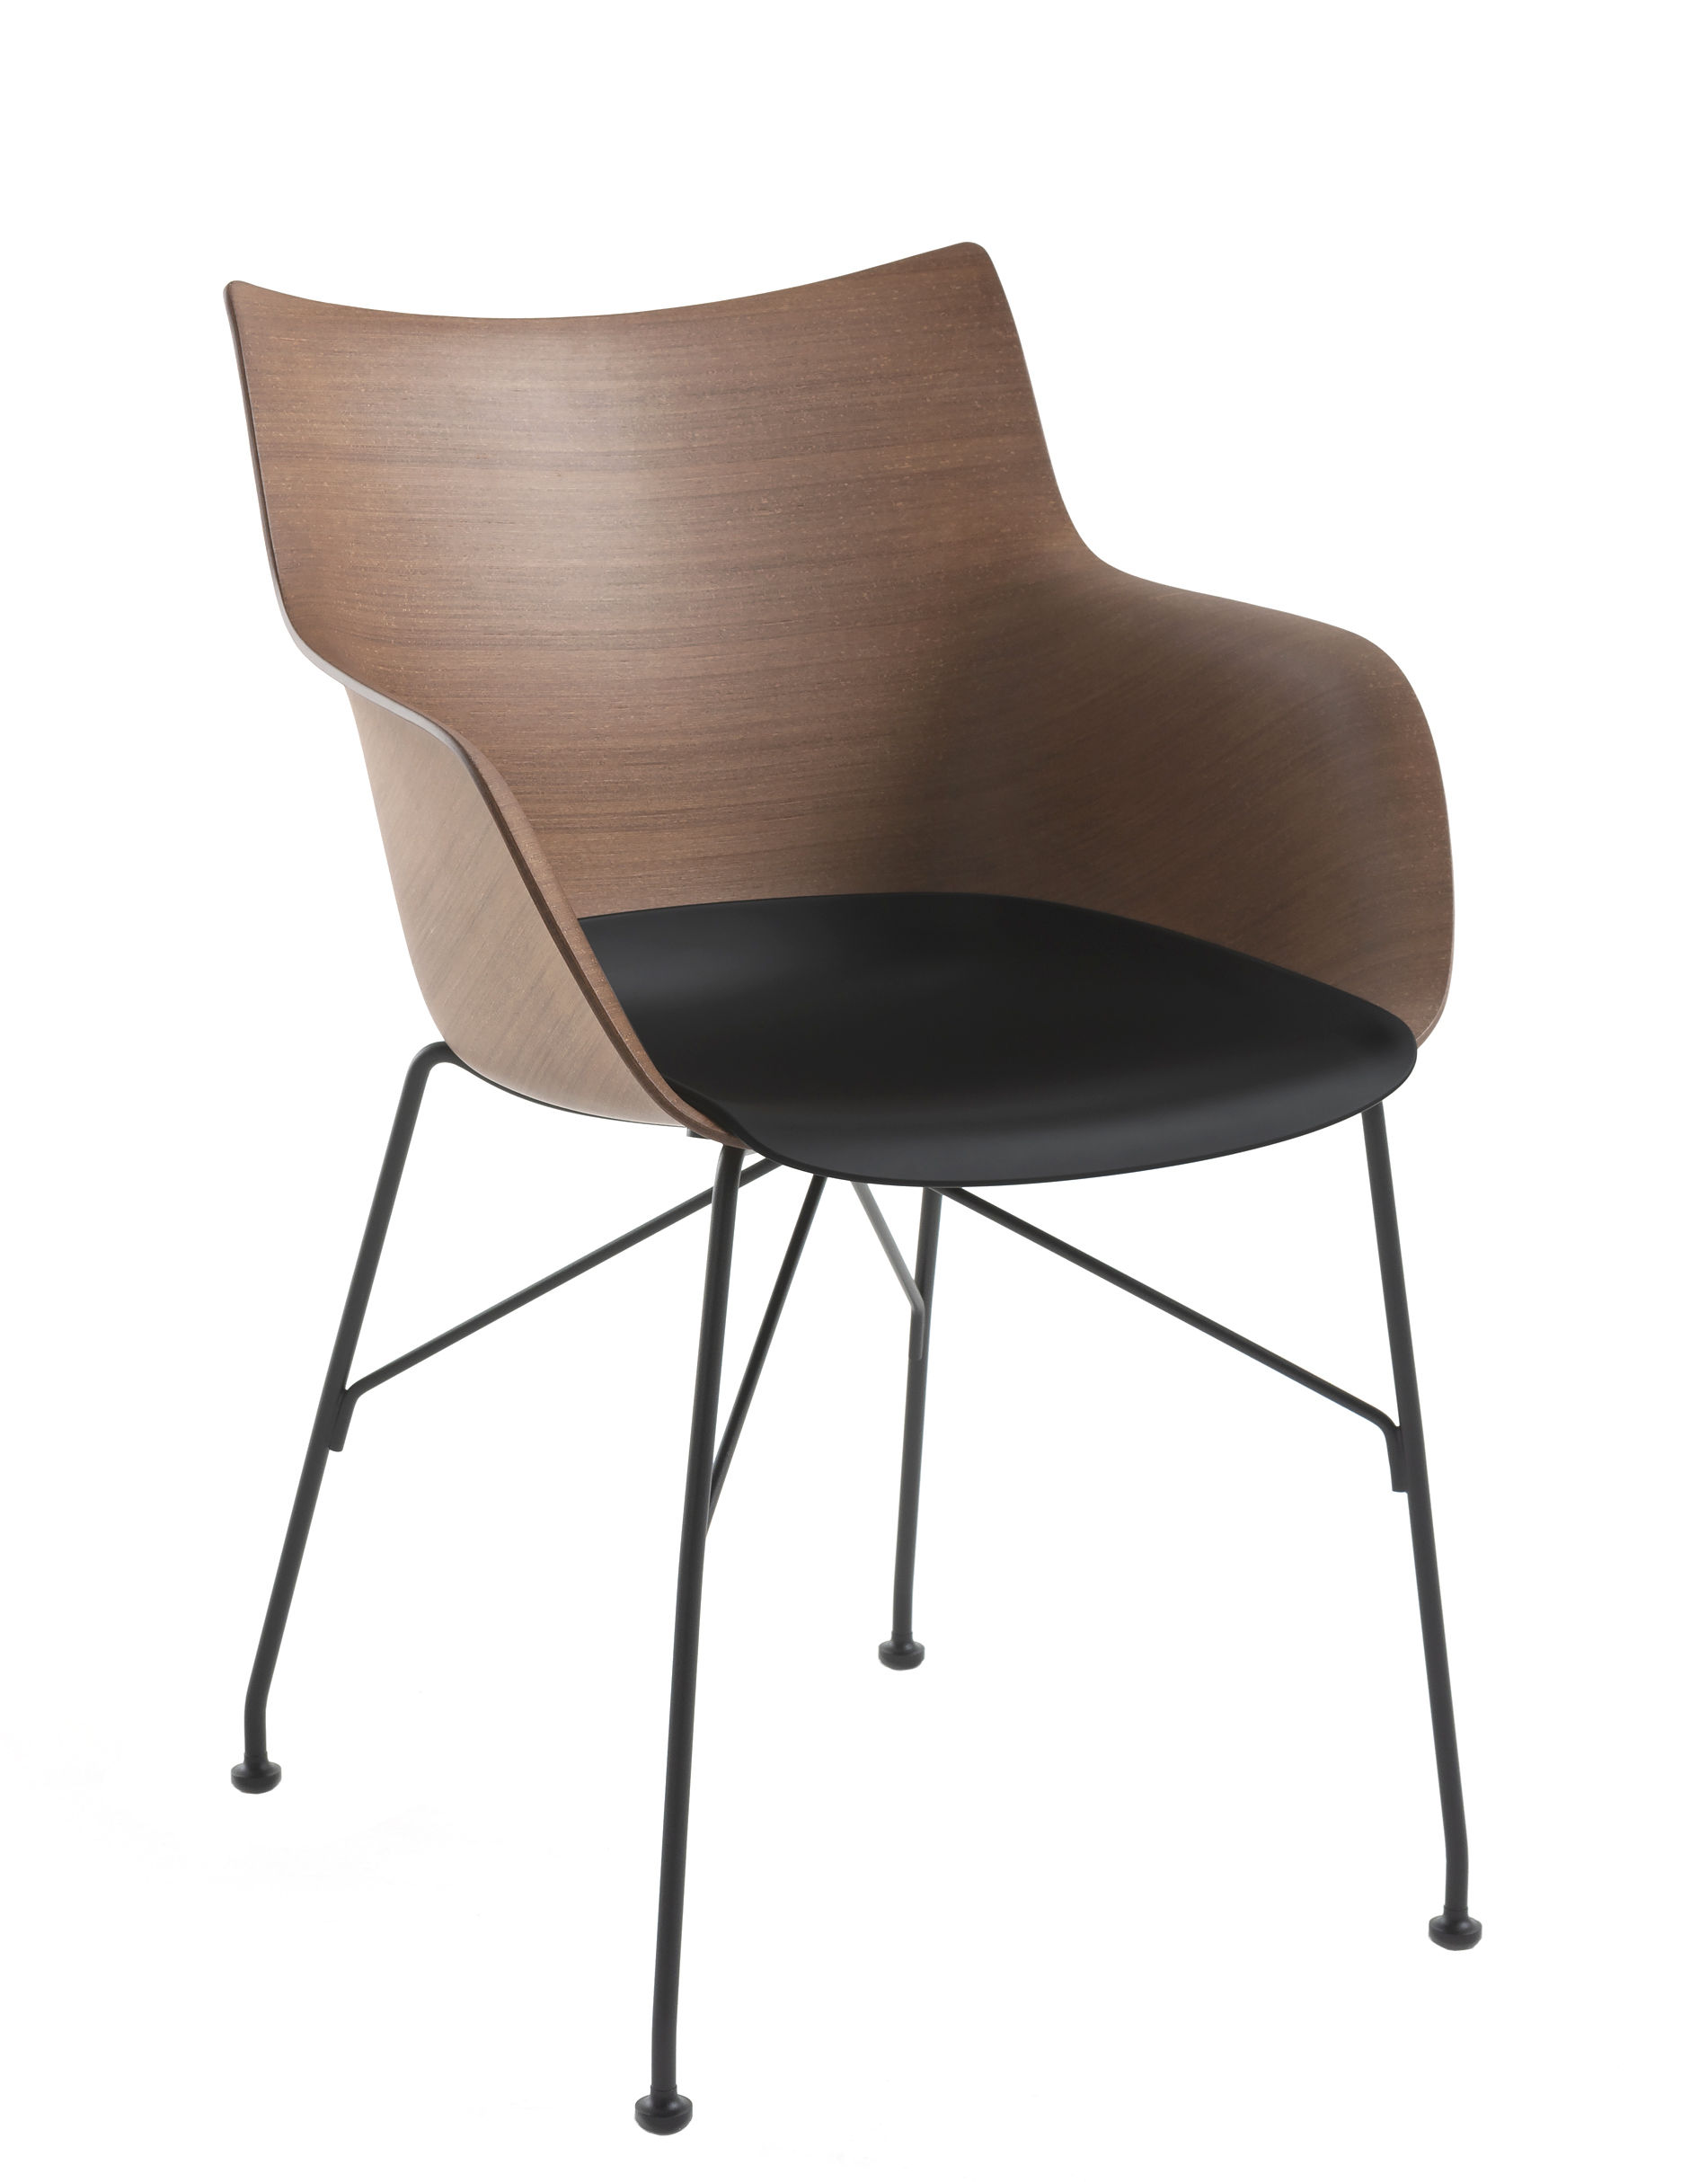 Furniture - Chairs - Q/Wood Armchair - / Moulded wood by Kartell - Dark beech & black / Black leg - Contreplaqué de hêtre teinté foncé moulé, Lacquered steel, Thermoplastic